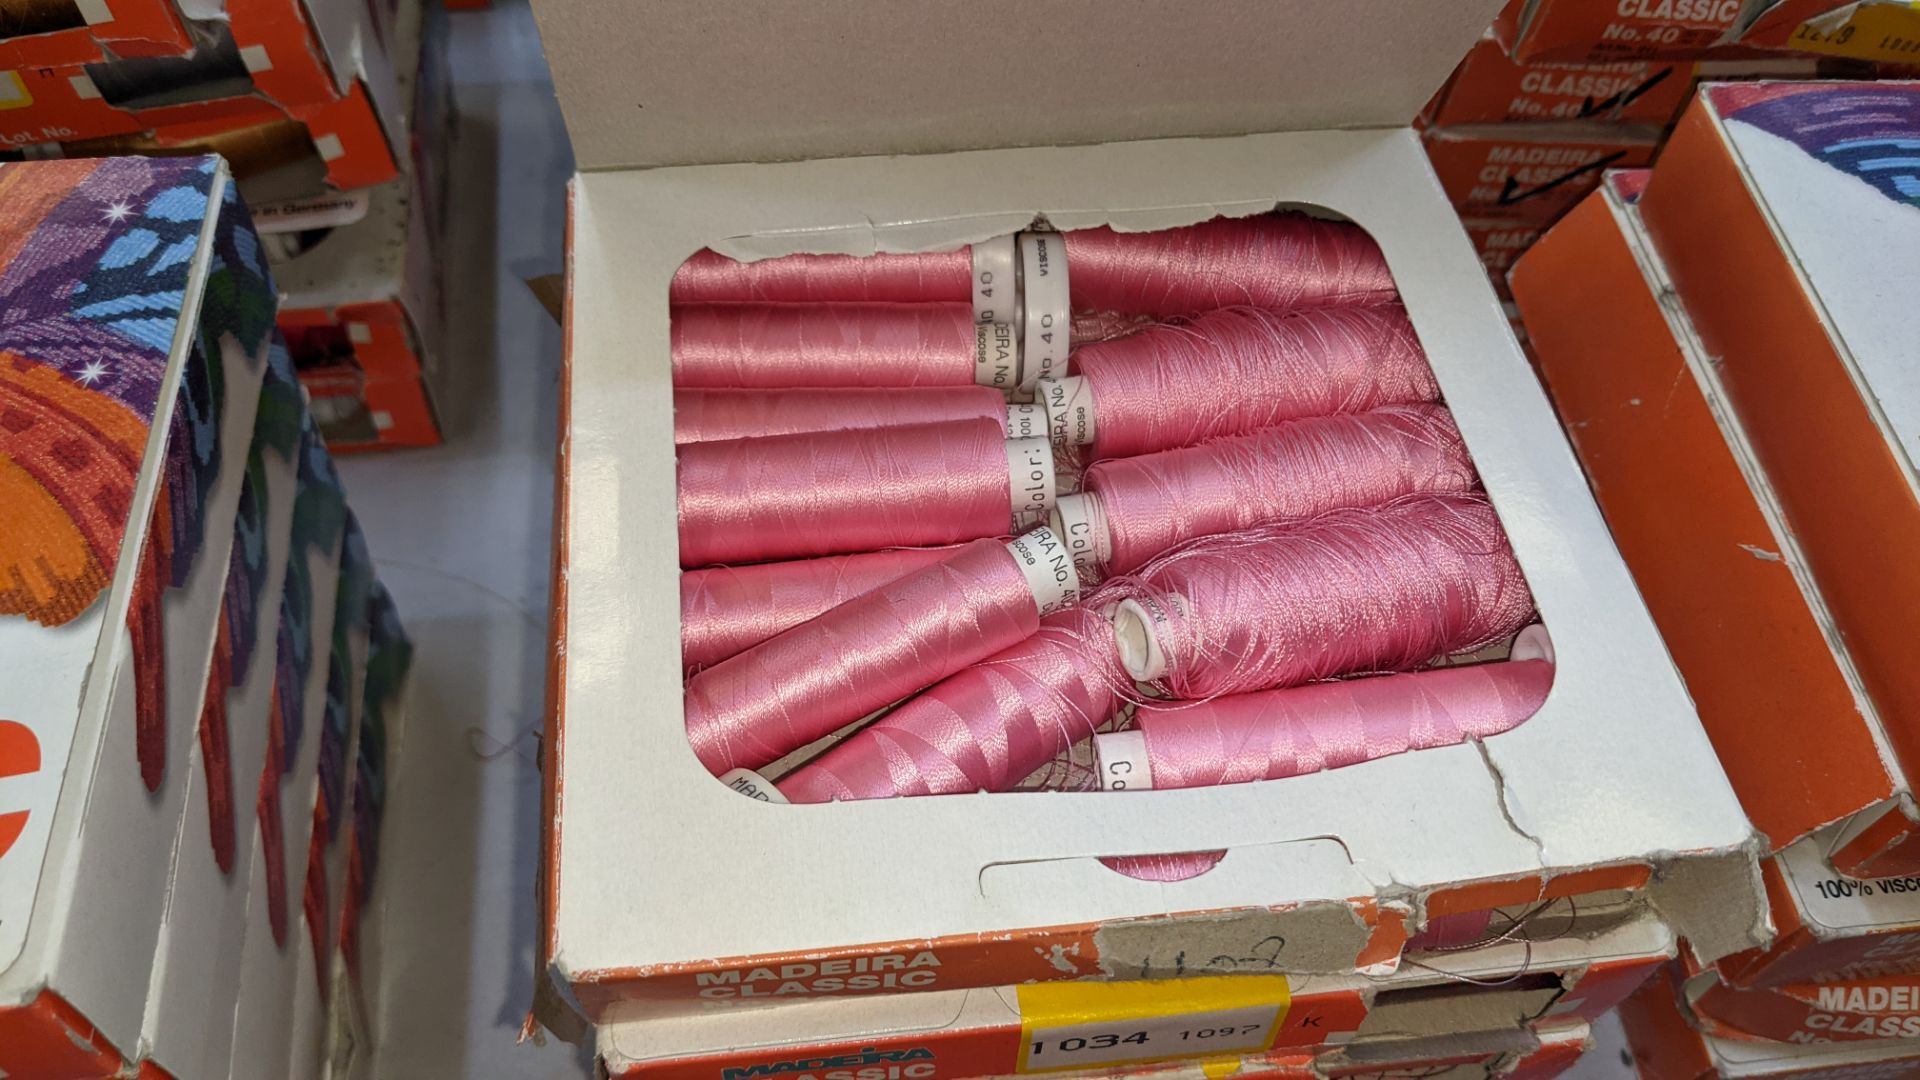 25 boxes of Madeira Classic No. 40 rayon embroidery thread - Image 11 of 13